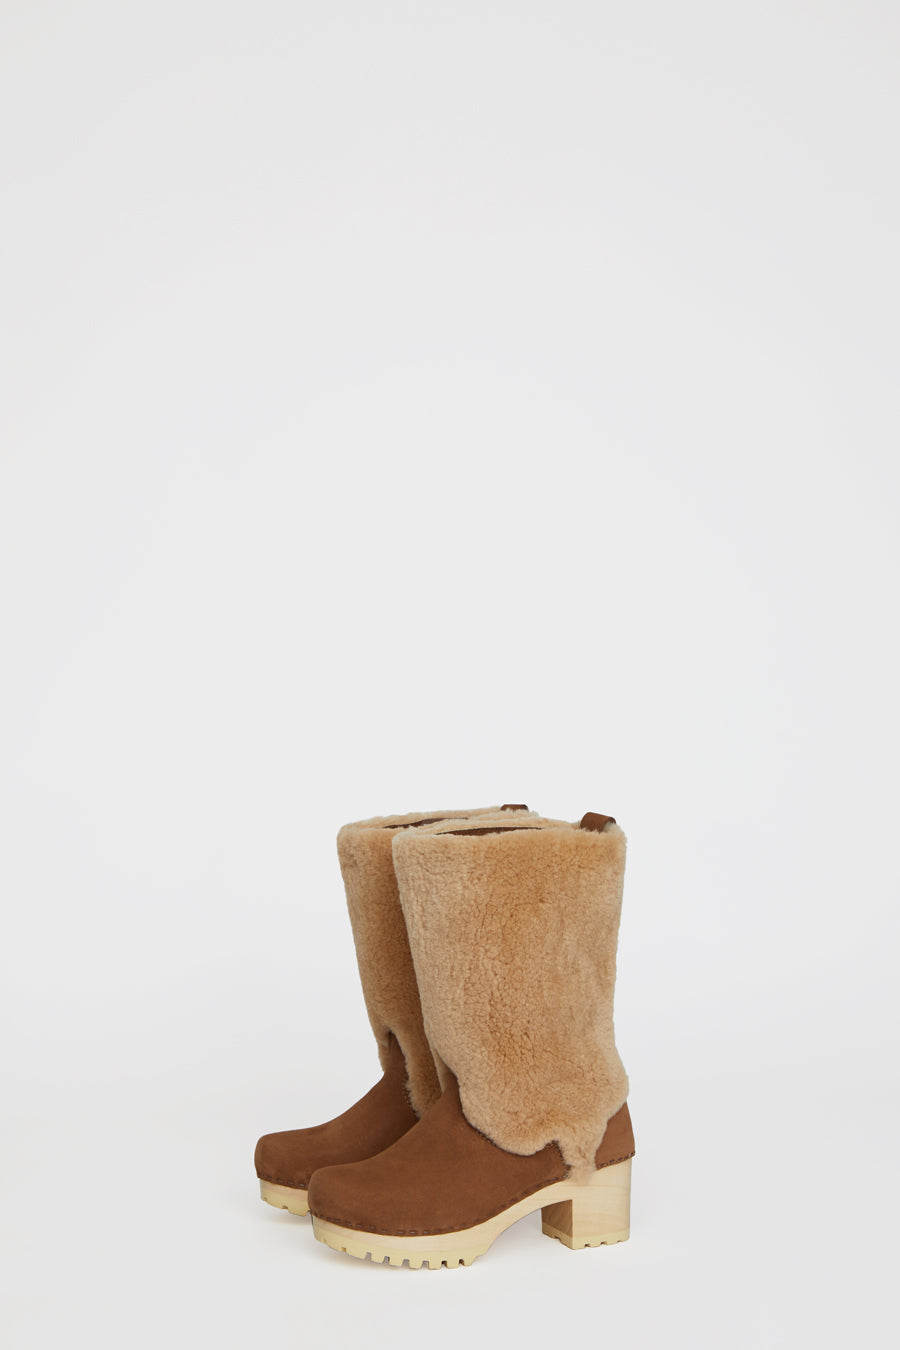 No.6 Alpha Shearling Clog Boot on Mid Tread in Honey Aviator on White Base